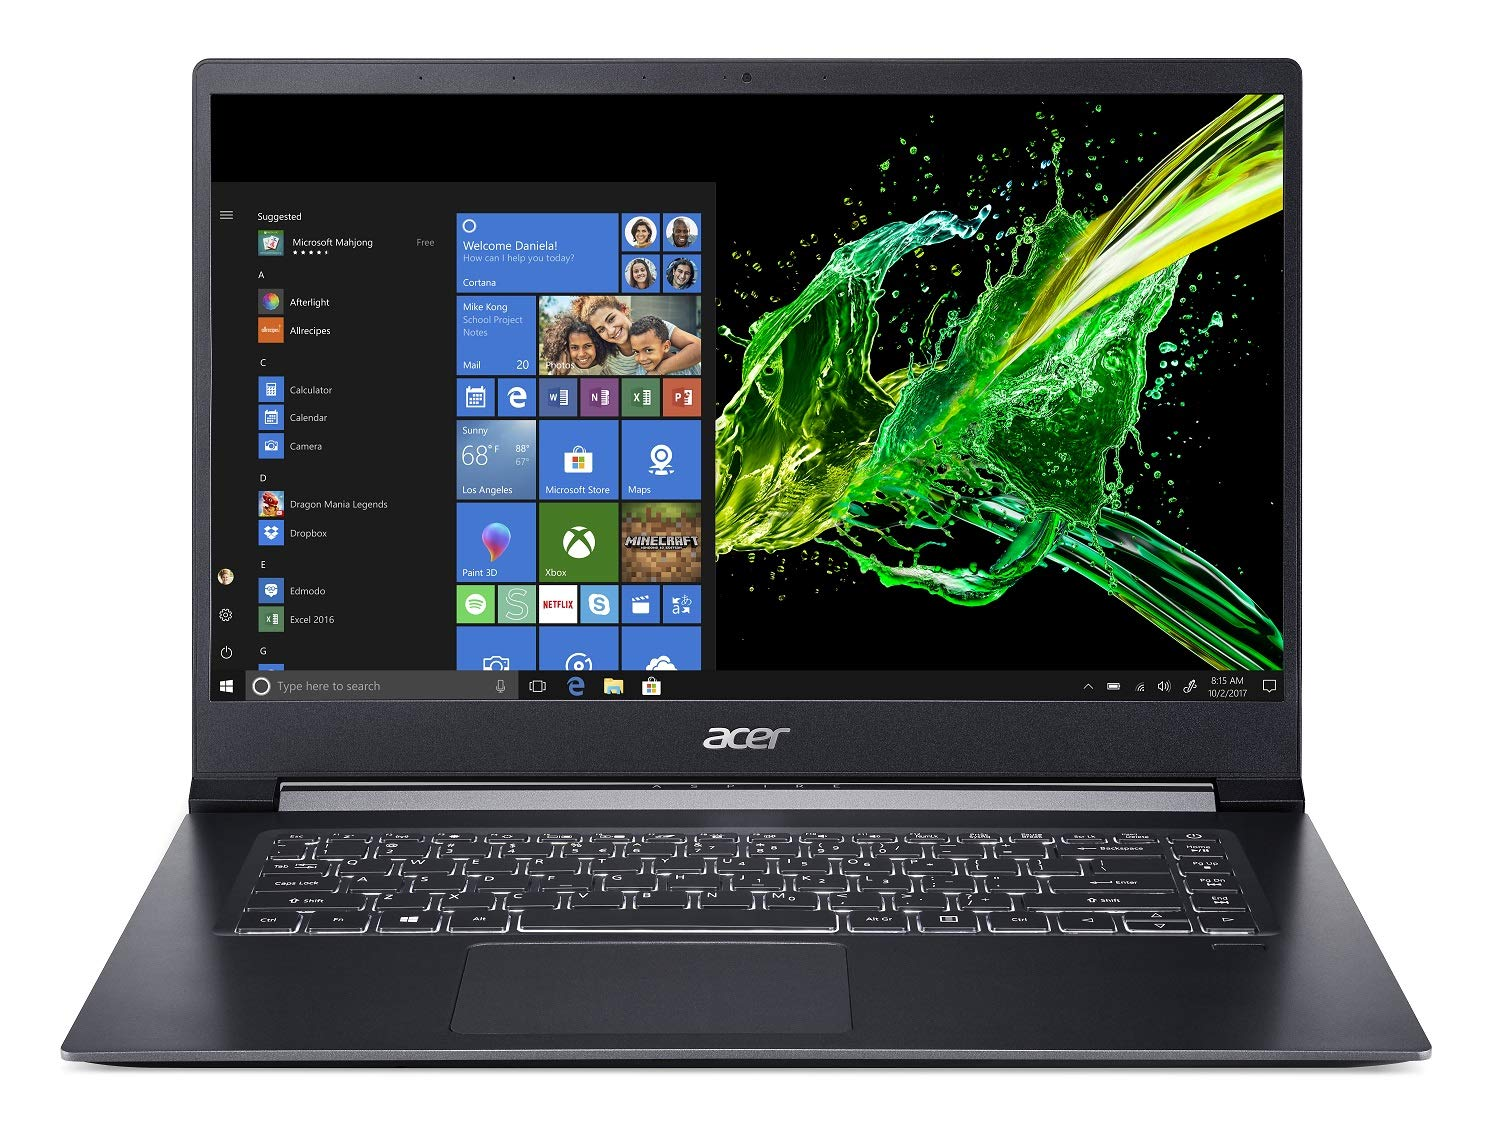 ACER ASPIRE 1500 CARD READER WINDOWS XP DRIVER DOWNLOAD